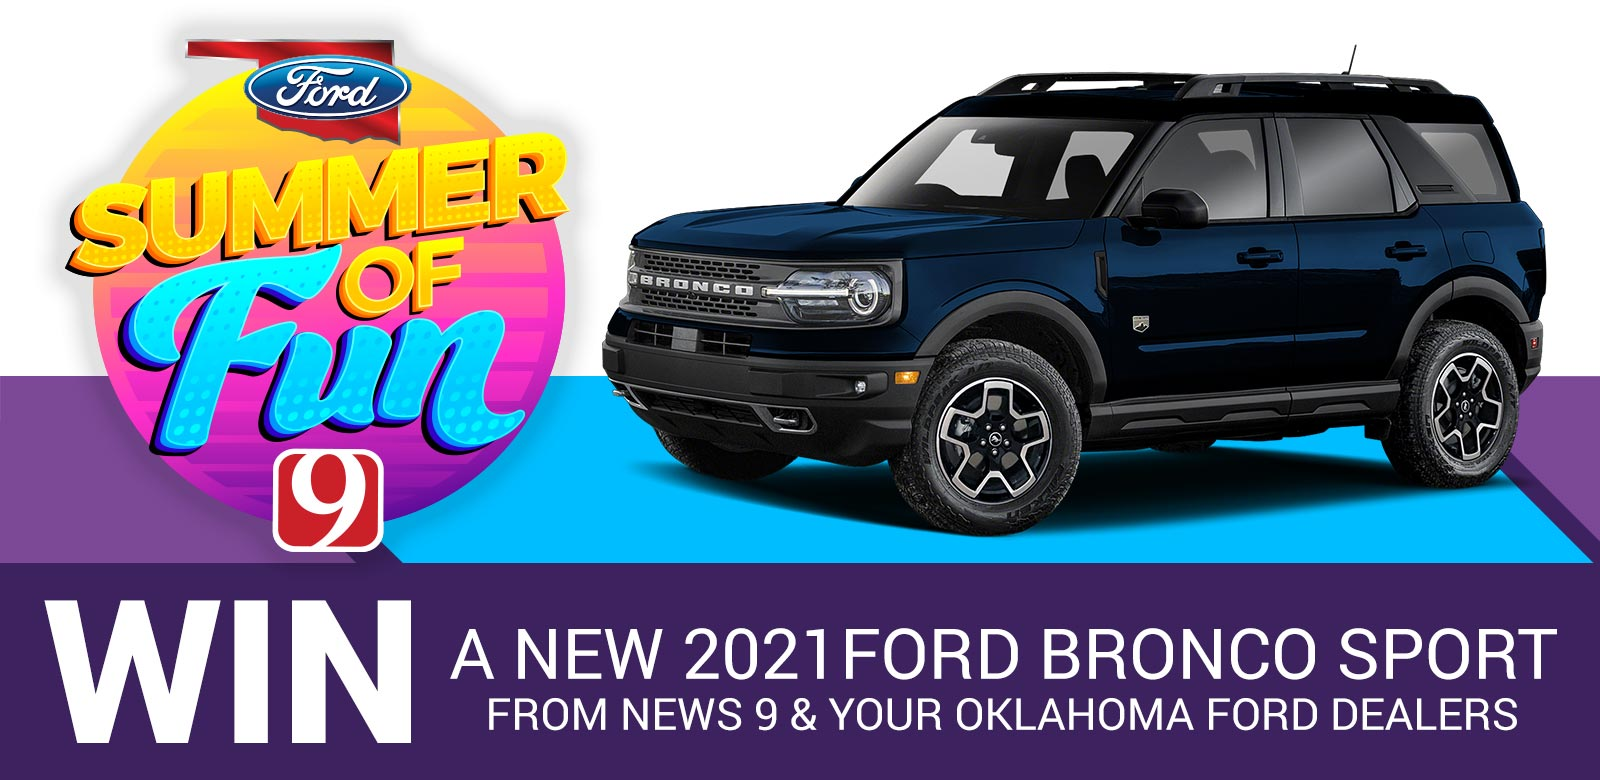 Win a Ford Bronco from News 9